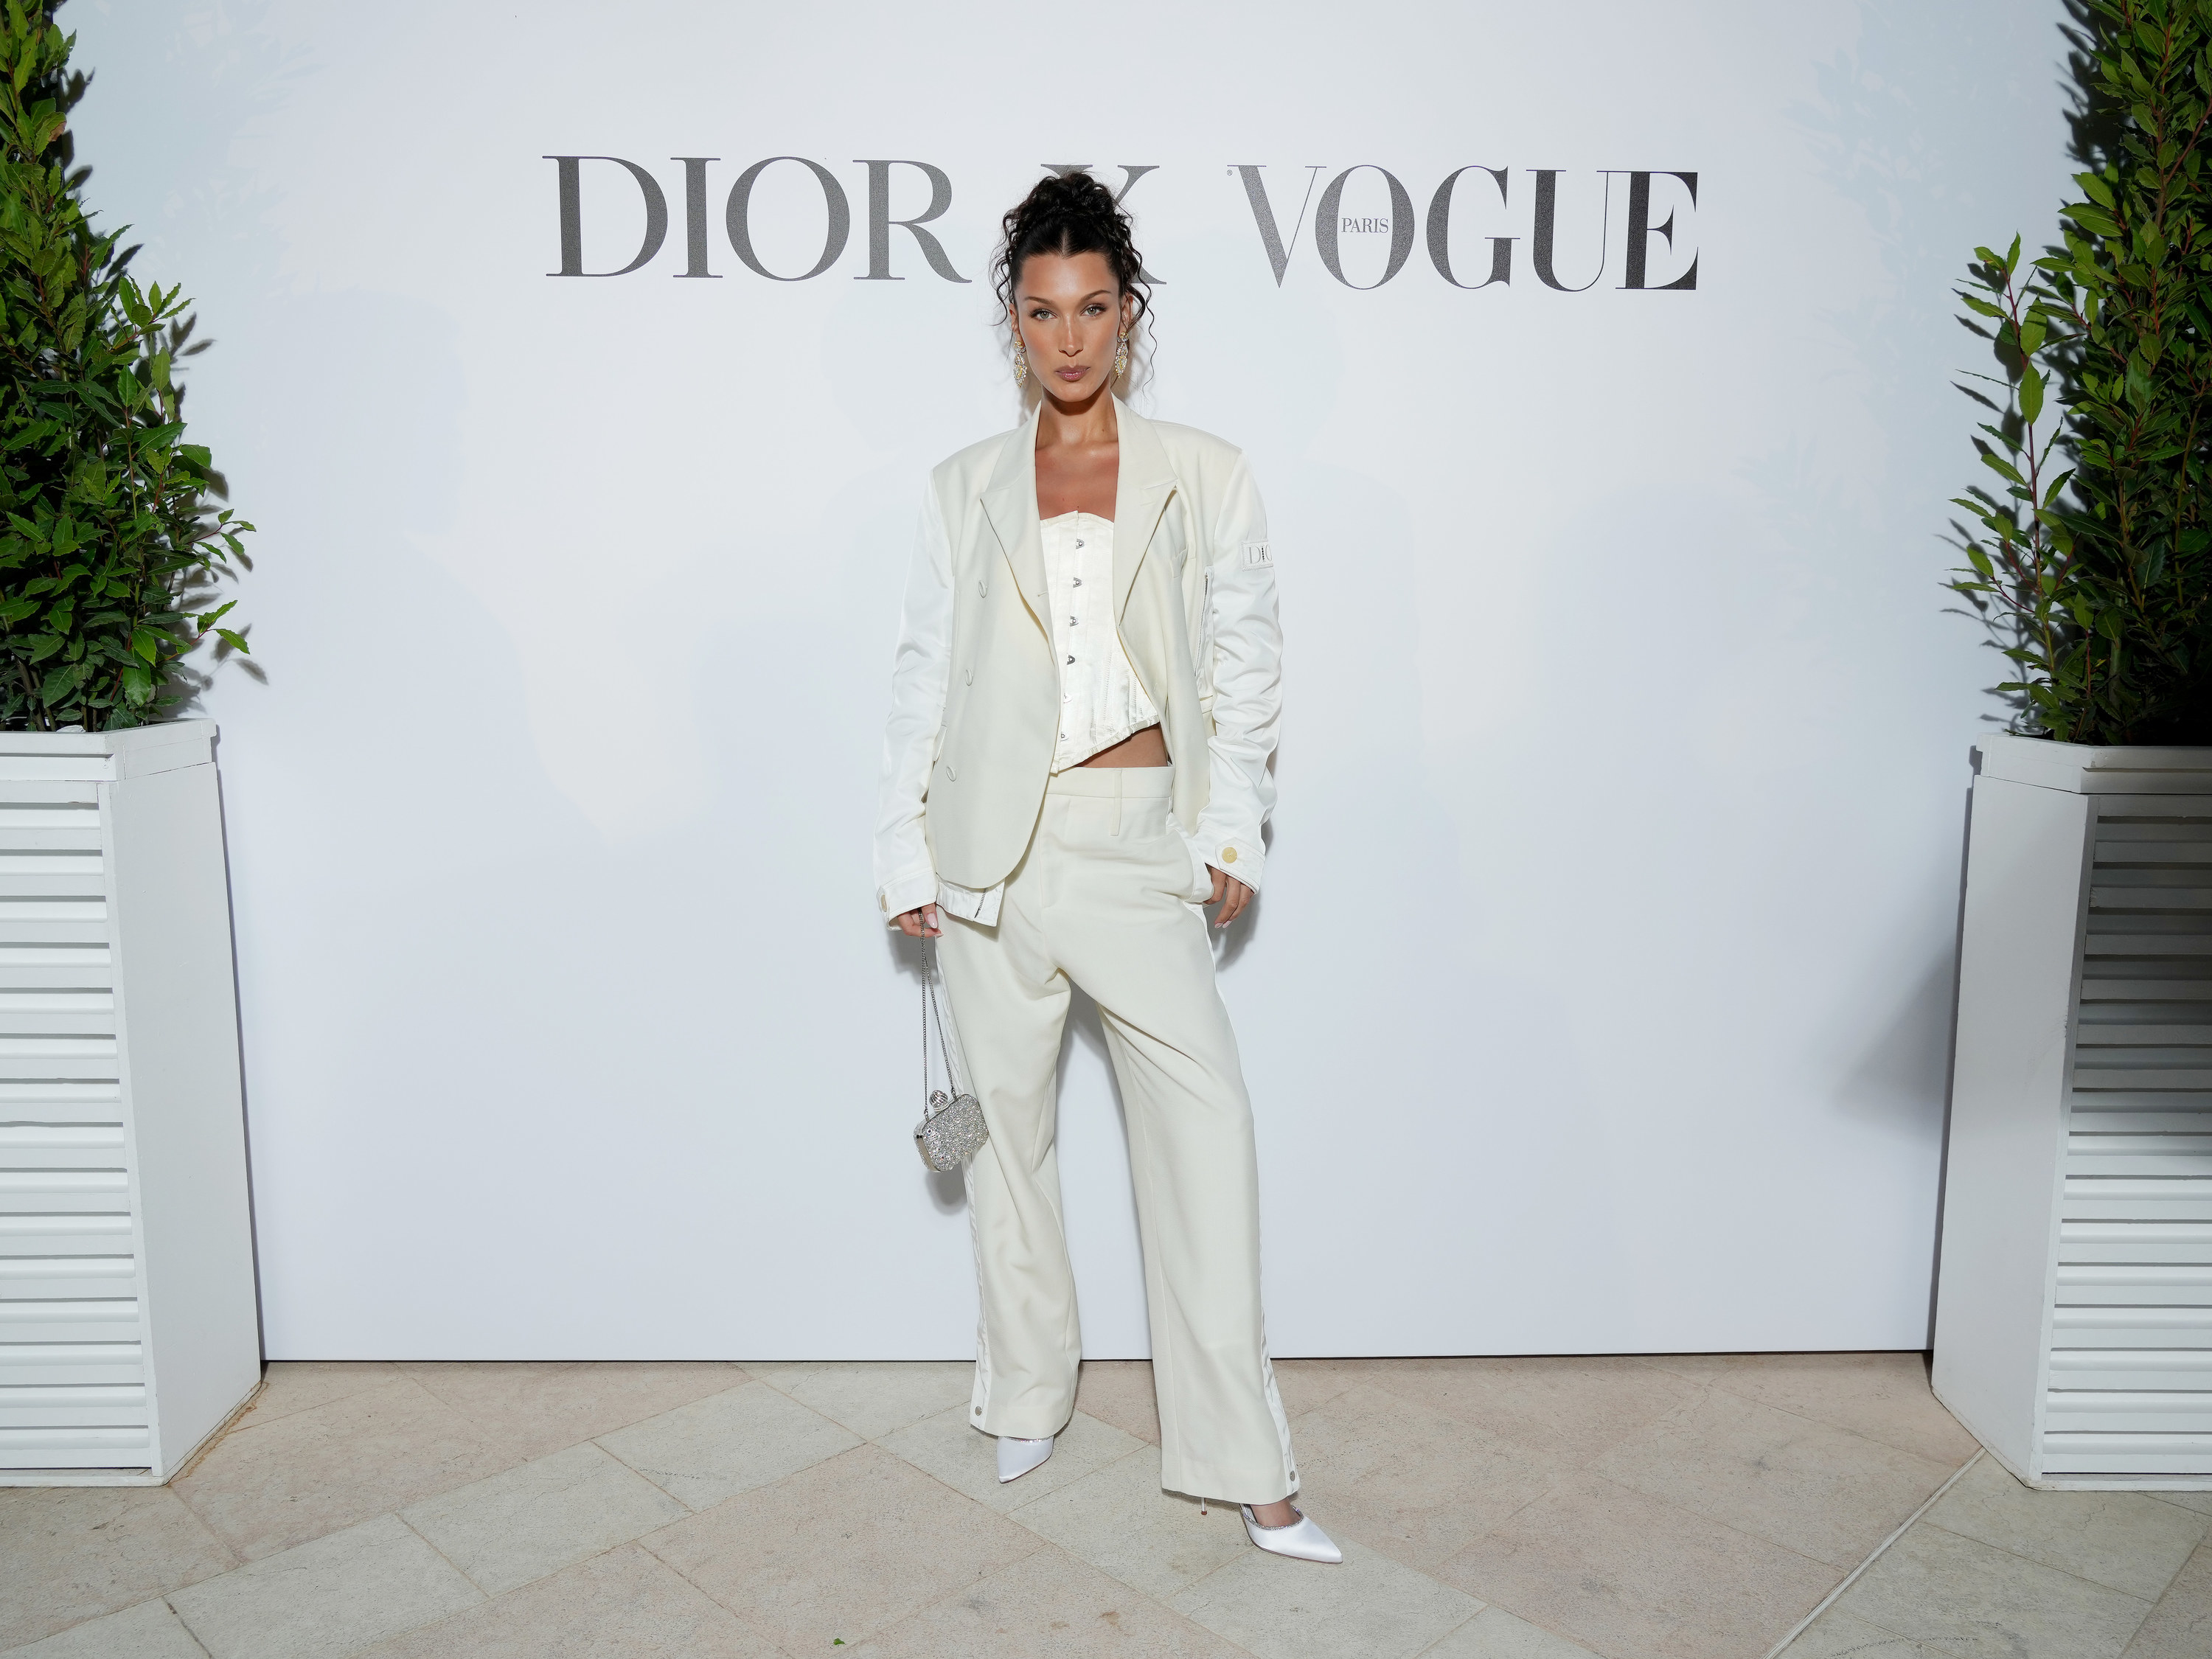 Bella Hadid is pictured wearing a beige suit at the Dior dinner at the Cannes Film Festival in 2021